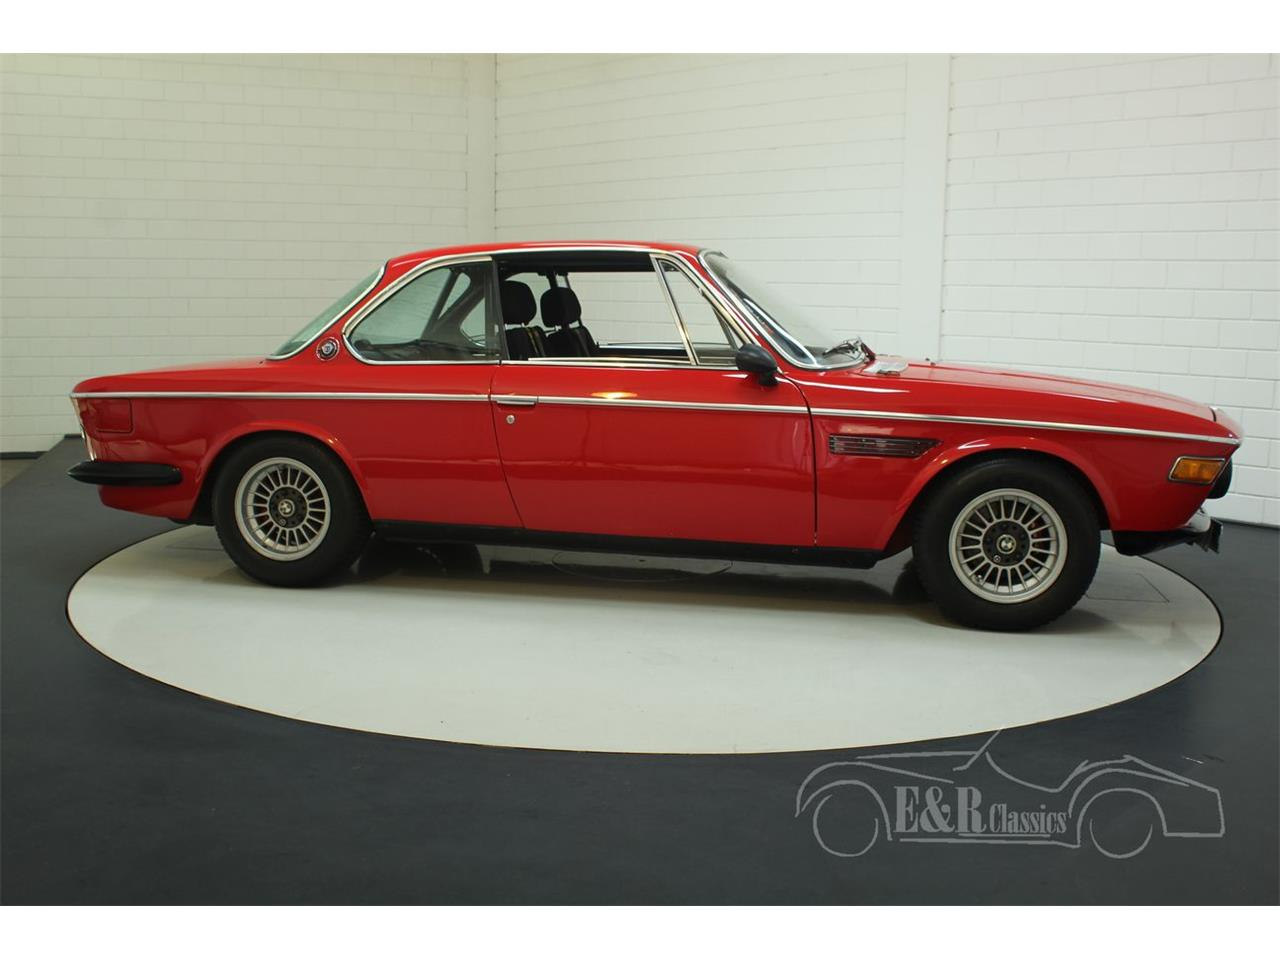 Large Picture of Classic '73 BMW 3.0CSL located in Noord-Brabant - $135,500.00 Offered by E & R Classics - PH42